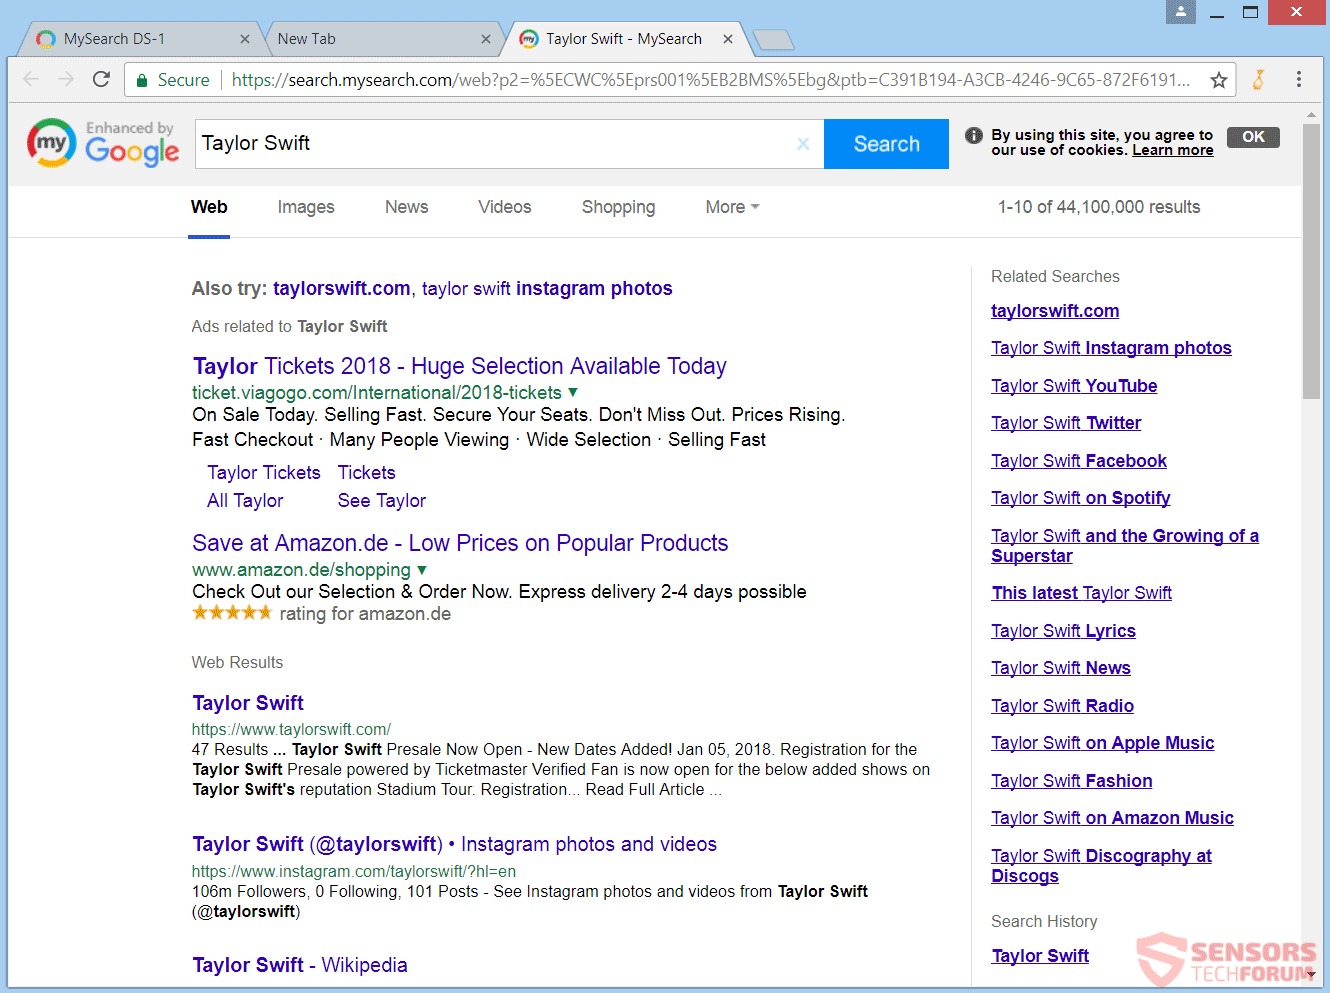 What browser am I using? - WhatsMyBrowser.org